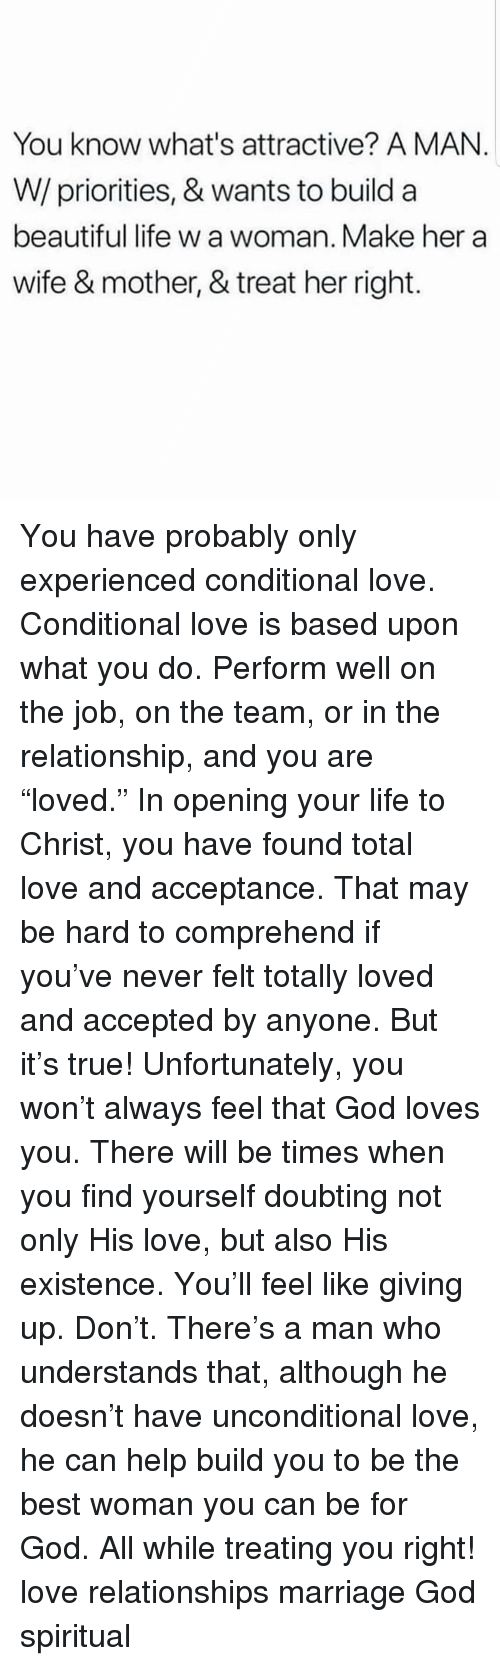 "Beautiful, God, and Life: You know what's attractive? A MAN.  W/priorities, & wants to build a  beautiful life w a woman. Make her a  wife & mother, & treat her right. You have probably only experienced conditional love. Conditional love is based upon what you do. Perform well on the job, on the team, or in the relationship, and you are ""loved."" In opening your life to Christ, you have found total love and acceptance. That may be hard to comprehend if you've never felt totally loved and accepted by anyone. But it's true! Unfortunately, you won't always feel that God loves you. There will be times when you find yourself doubting not only His love, but also His existence. You'll feel like giving up. Don't. There's a man who understands that, although he doesn't have unconditional love, he can help build you to be the best woman you can be for God. All while treating you right! love relationships marriage God spiritual"